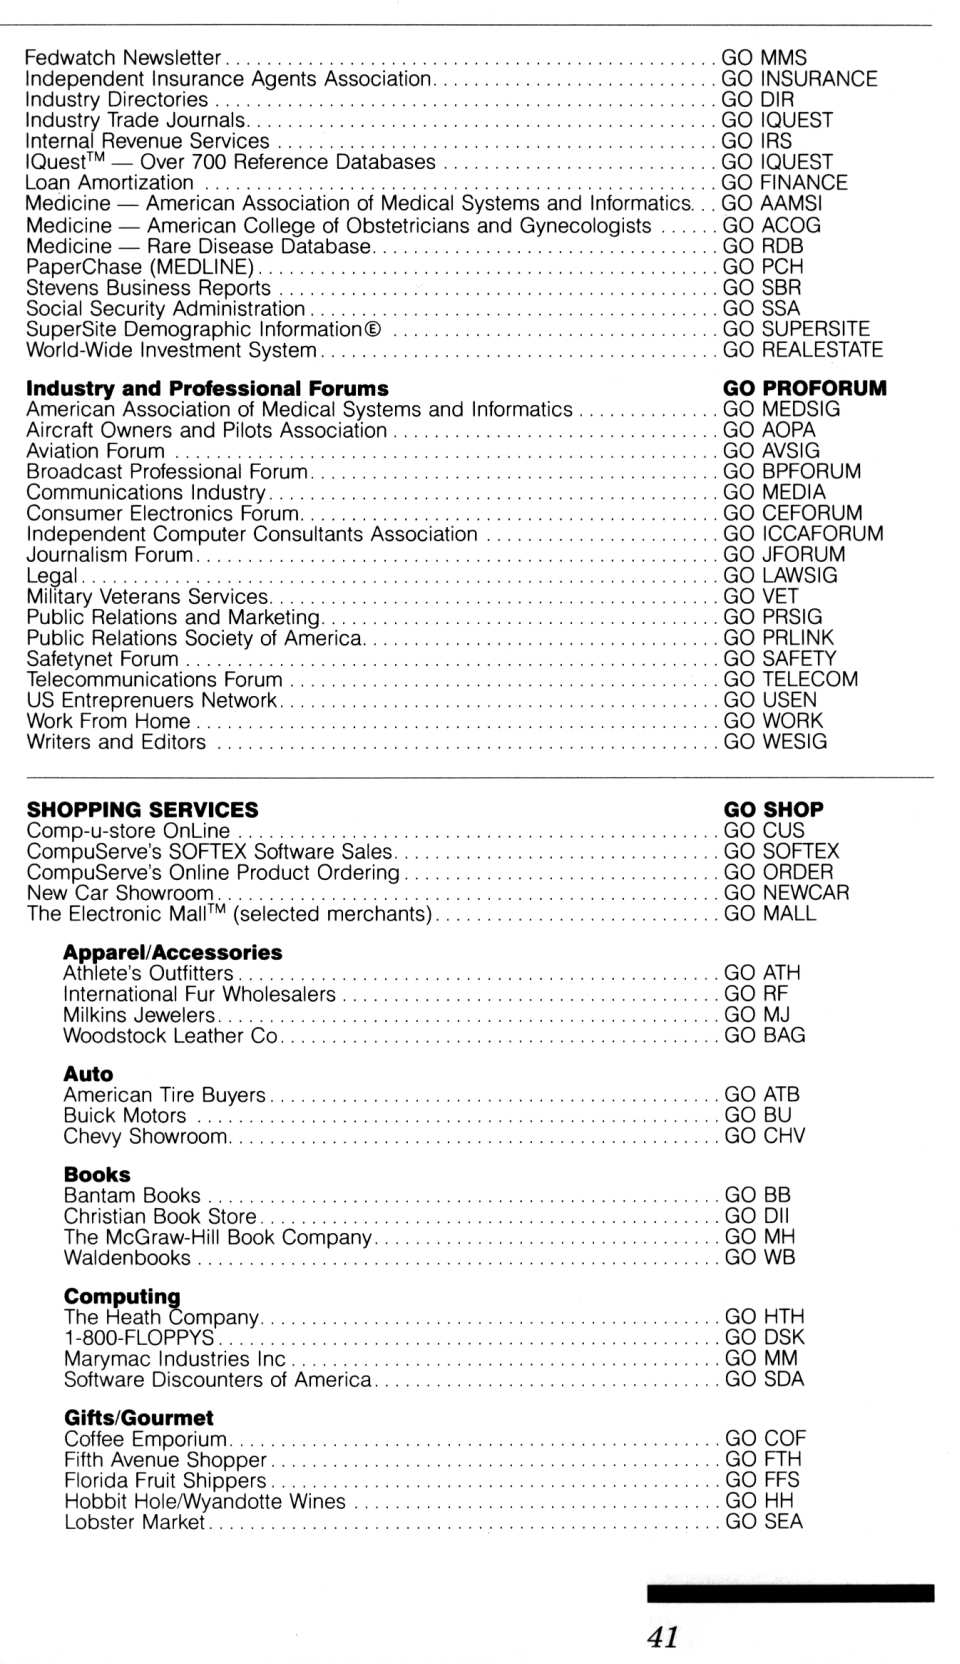 [CompuServe IntroPak page 41/44  Information Service Highlights (5/6)]